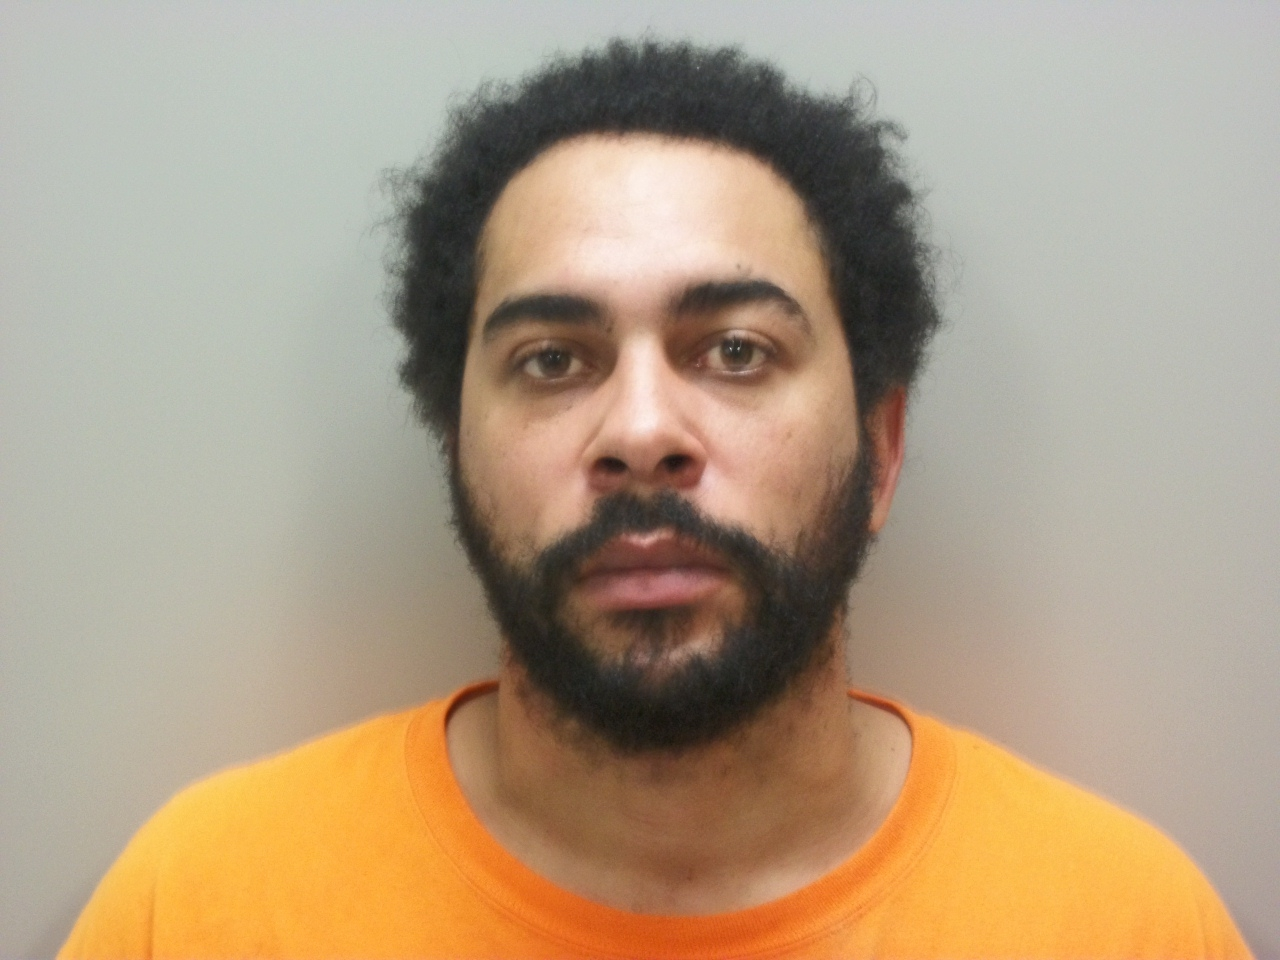 MARCUS MOORE MCCATHERN (WCSO)